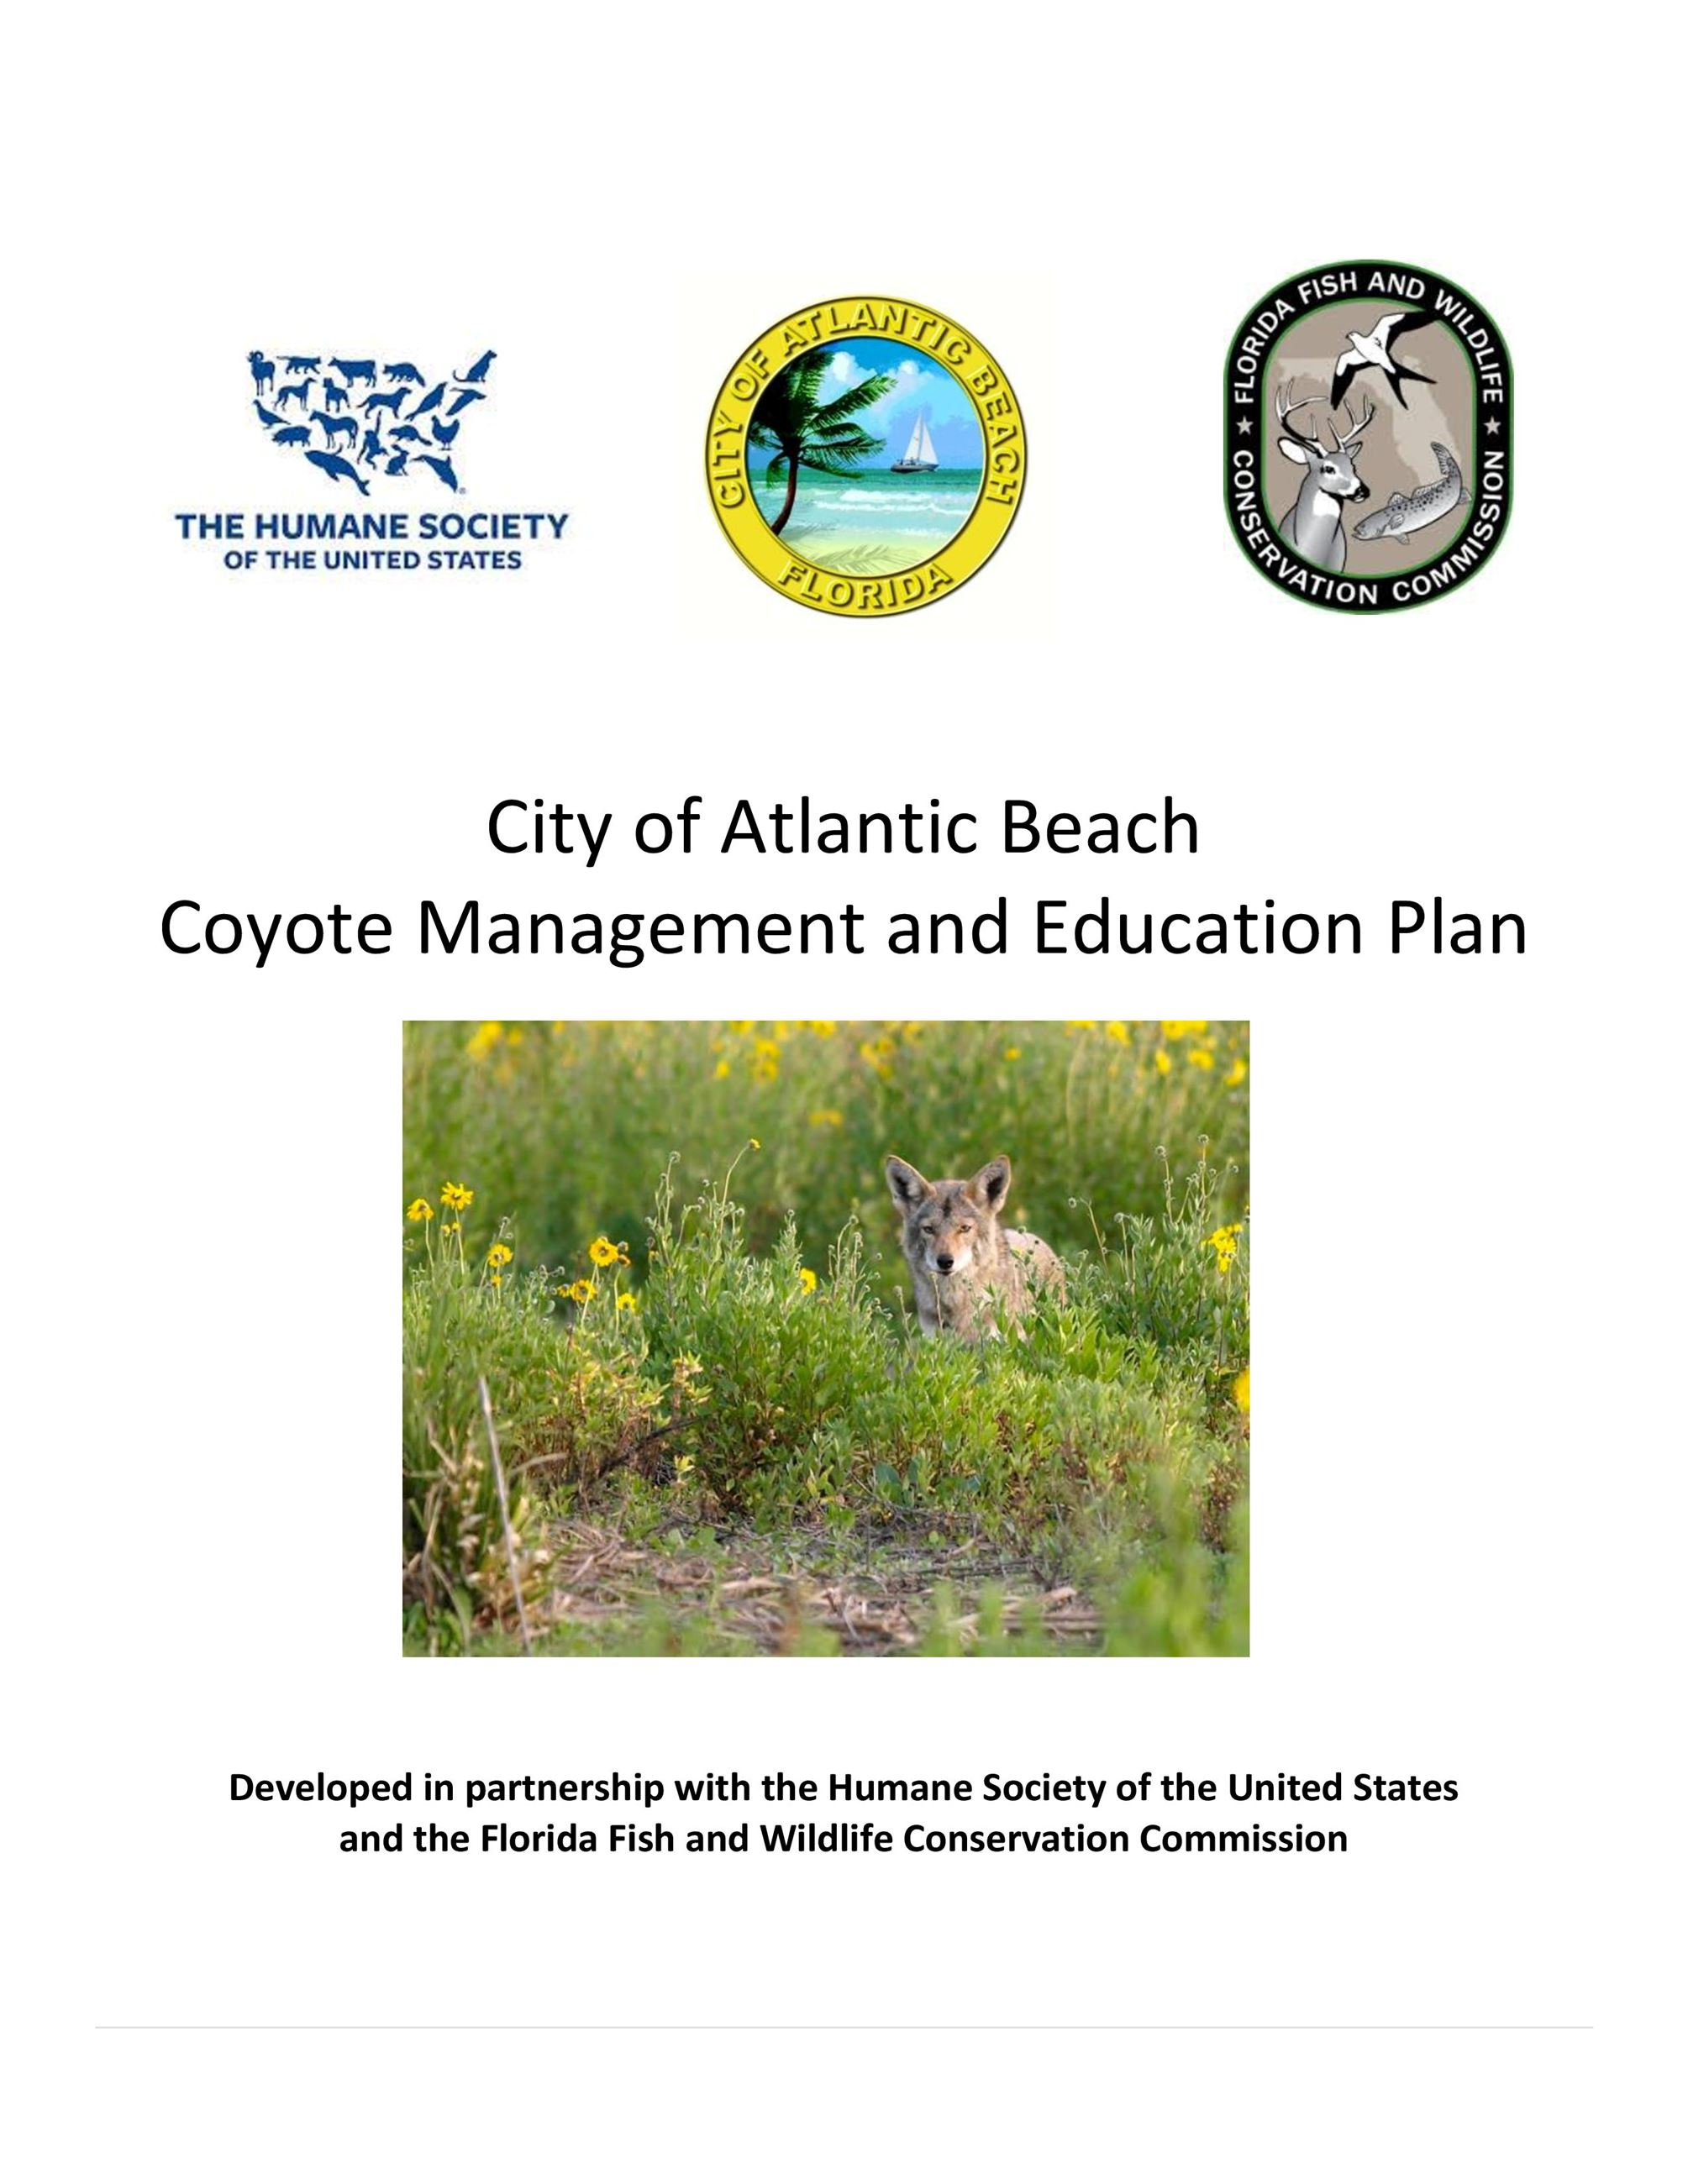 COAB Coyote Management and Education Plan 031919 COVER PAGE-page-001